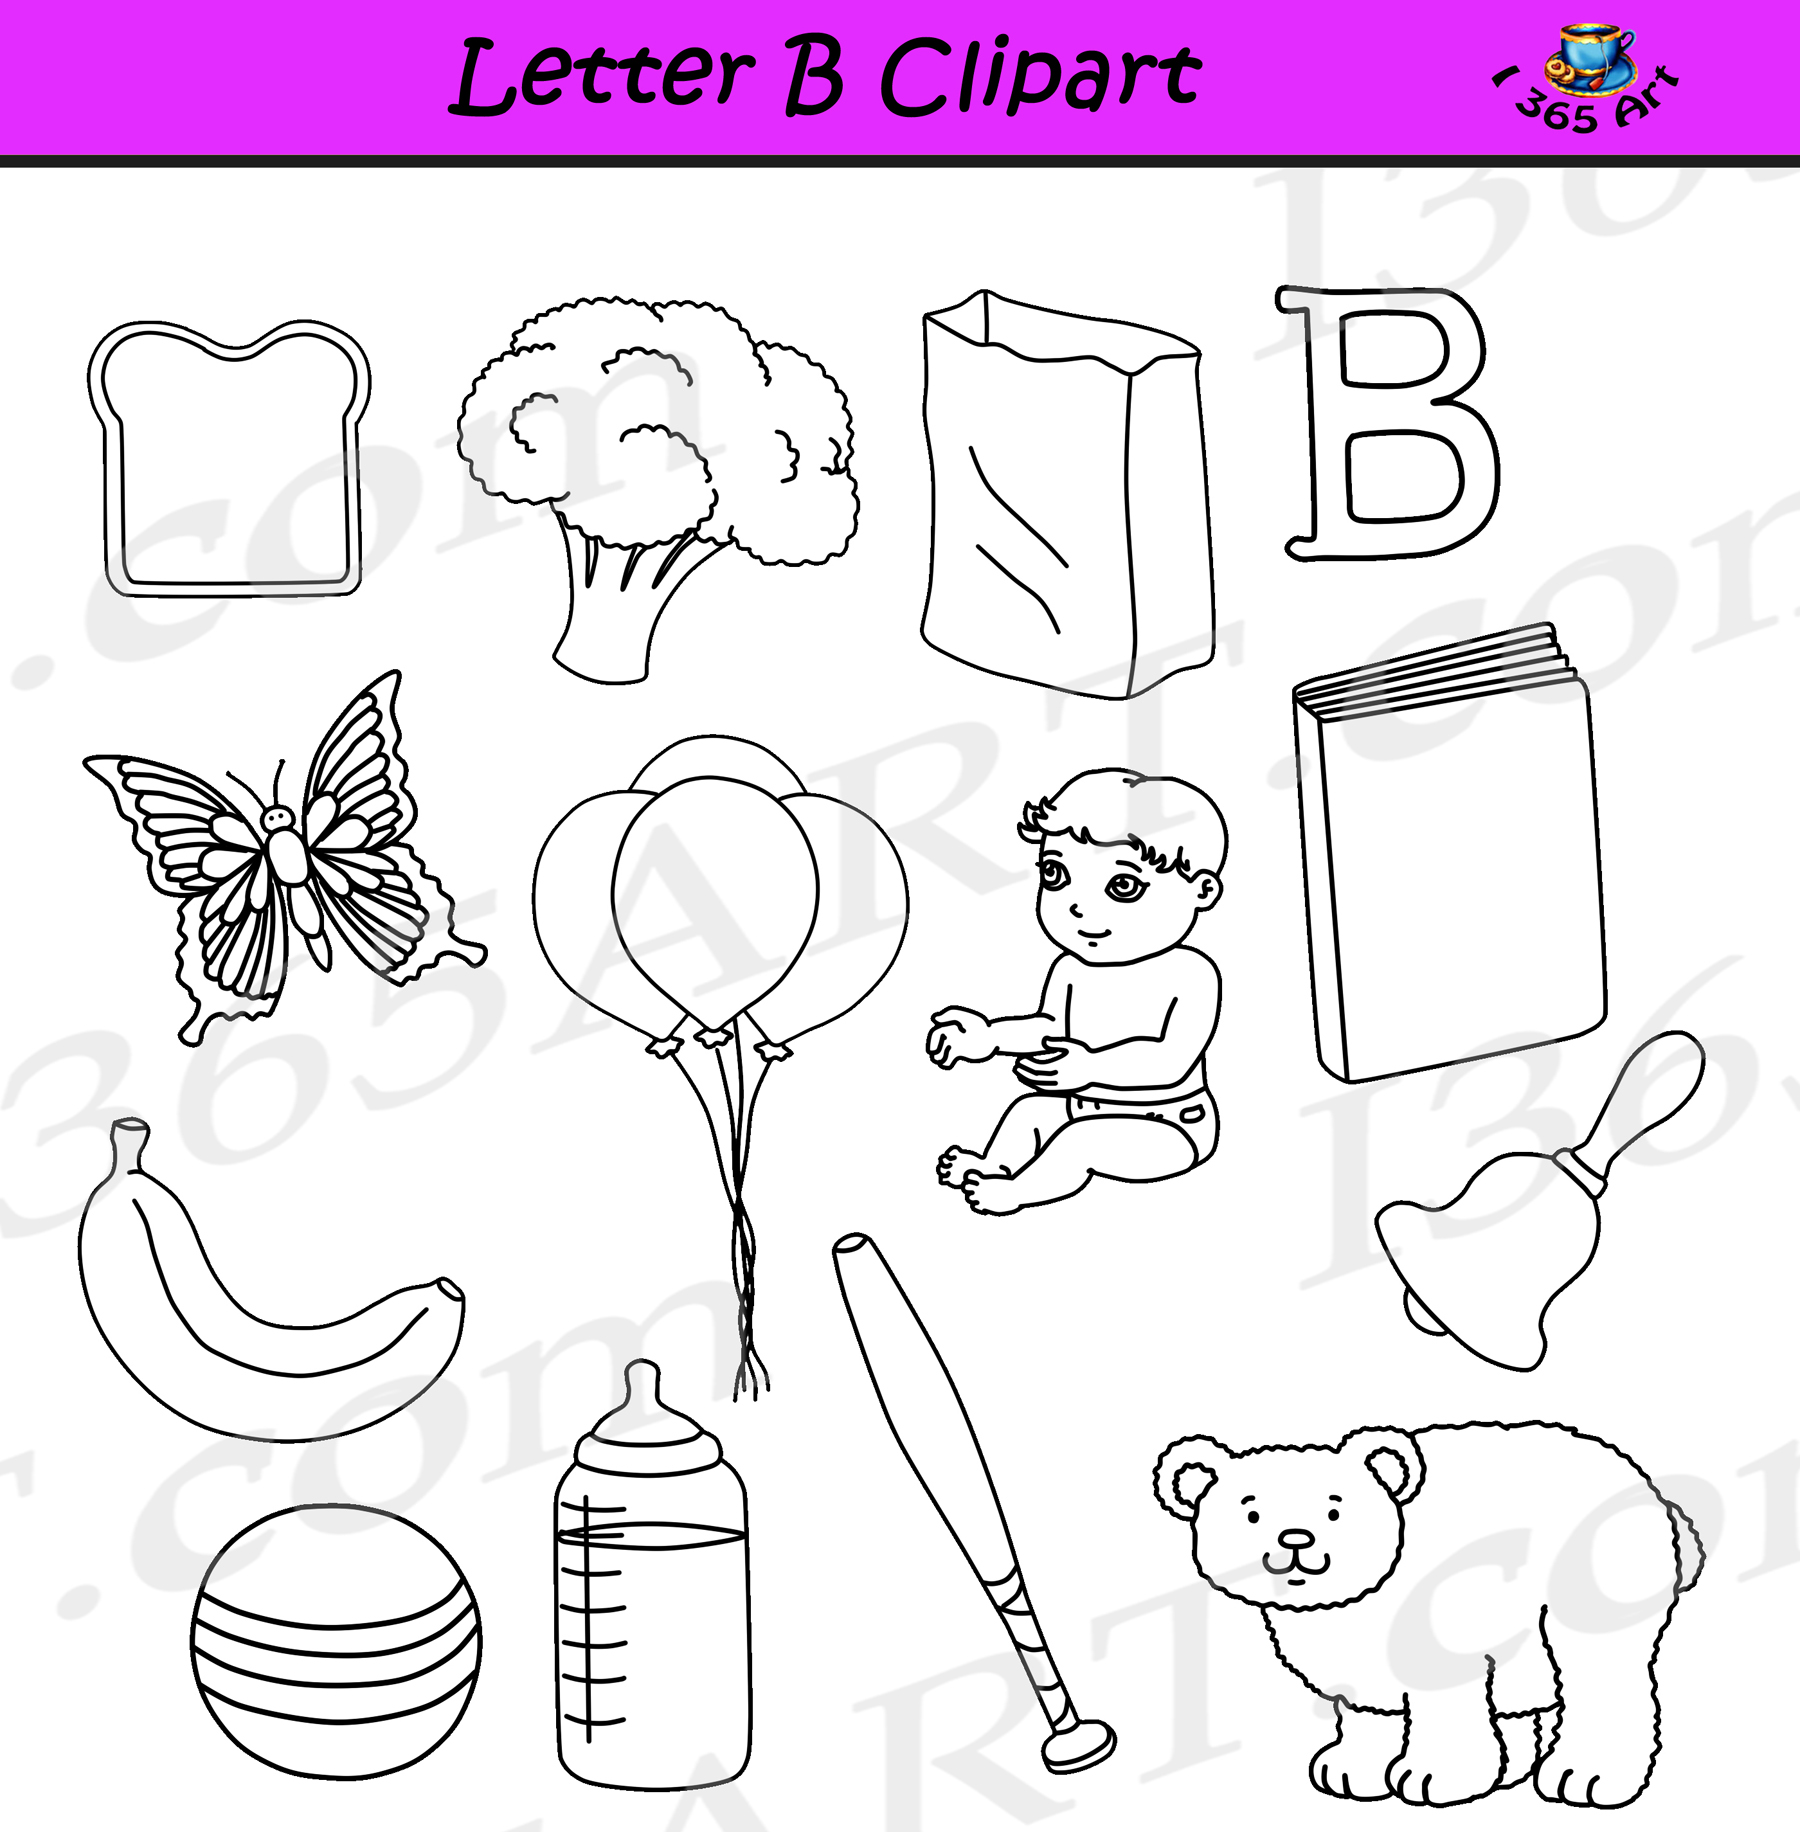 Letter B Clipart Objects